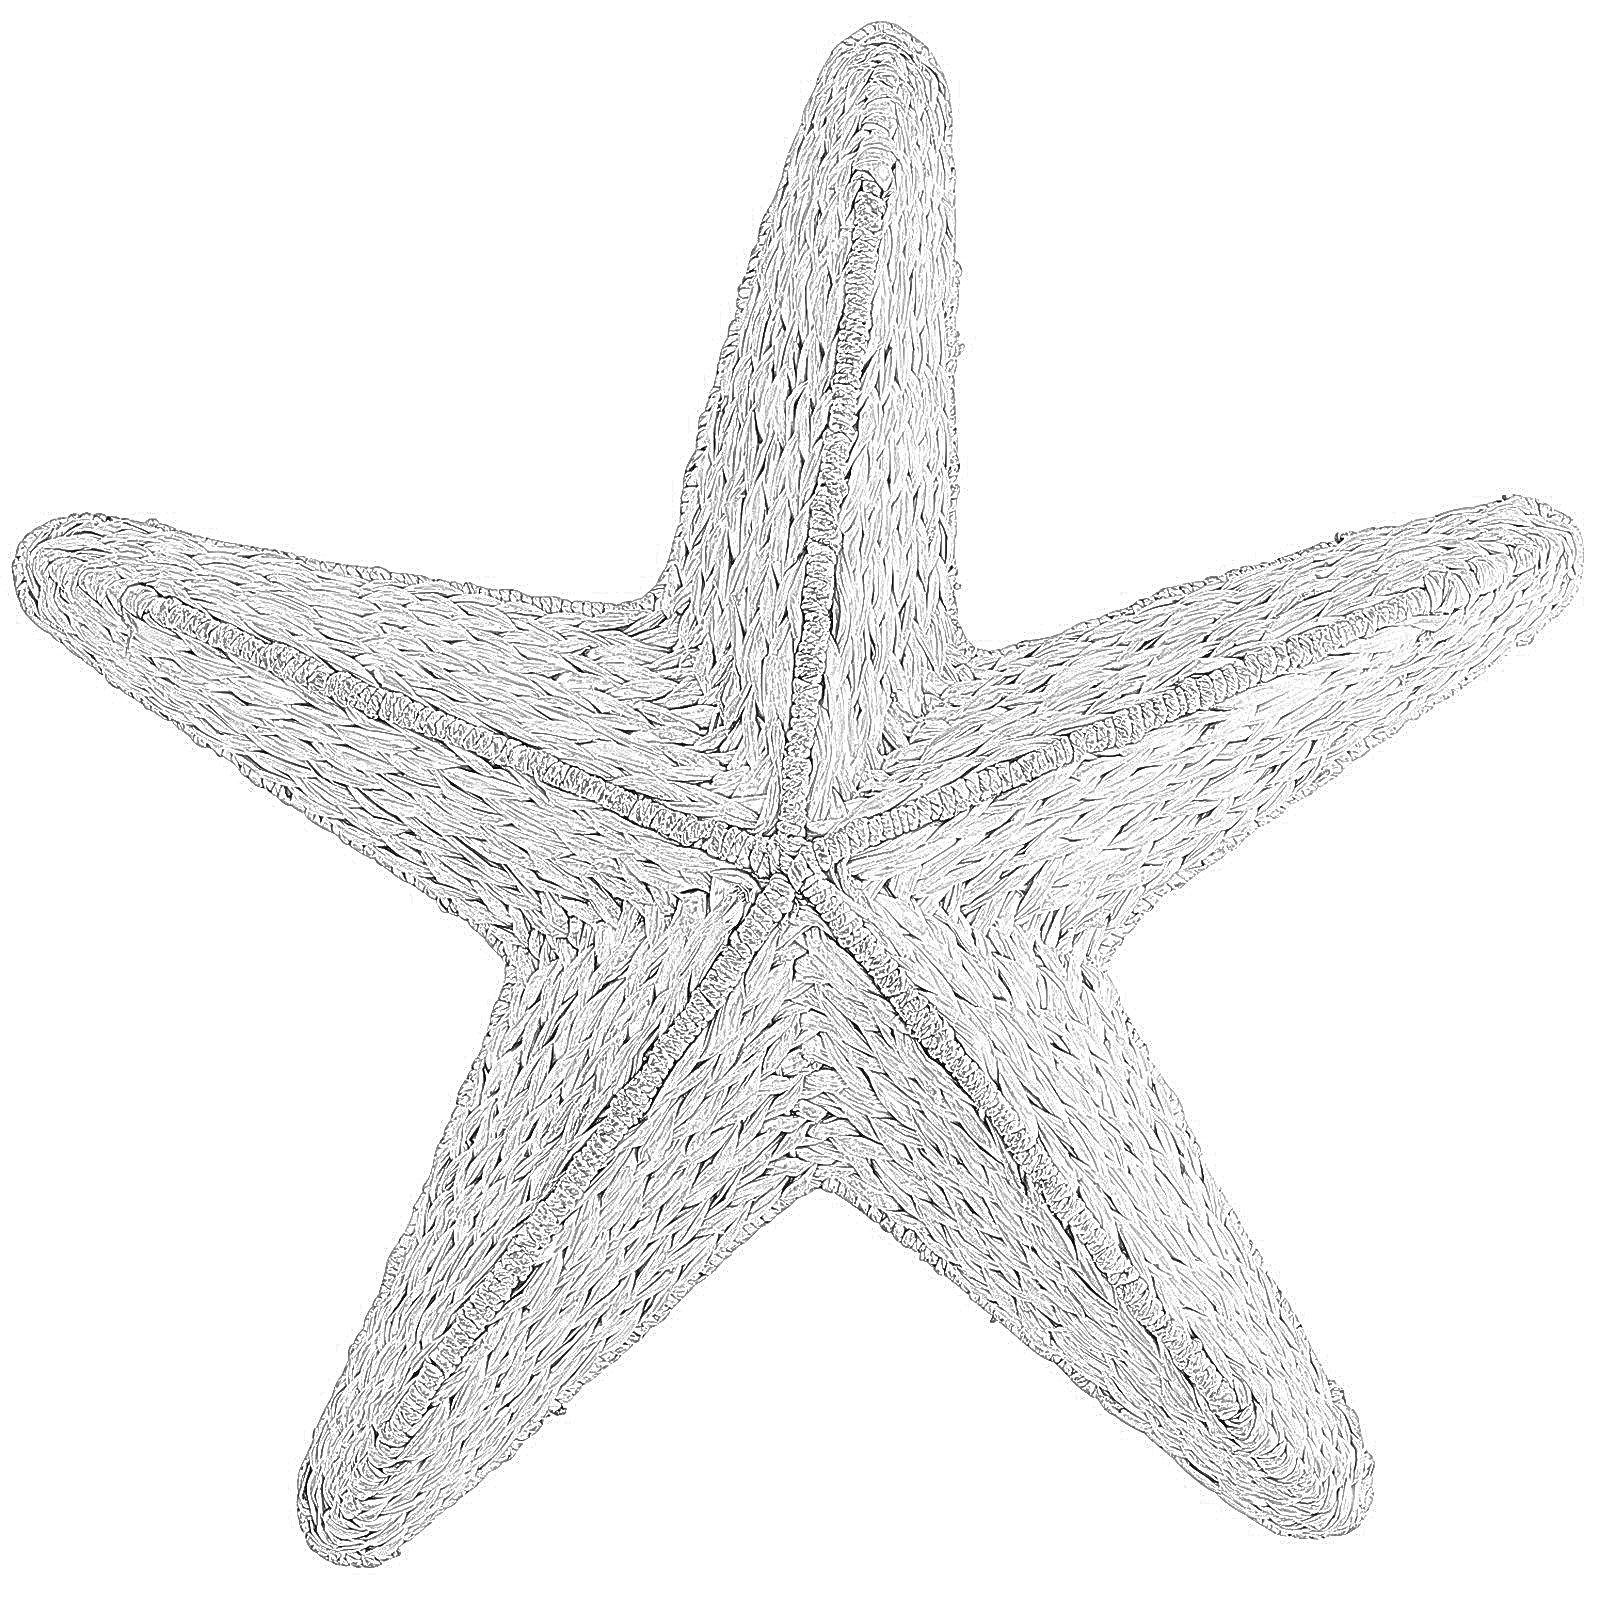 sea star coloring page sea star drawing at getdrawings free download page sea star coloring